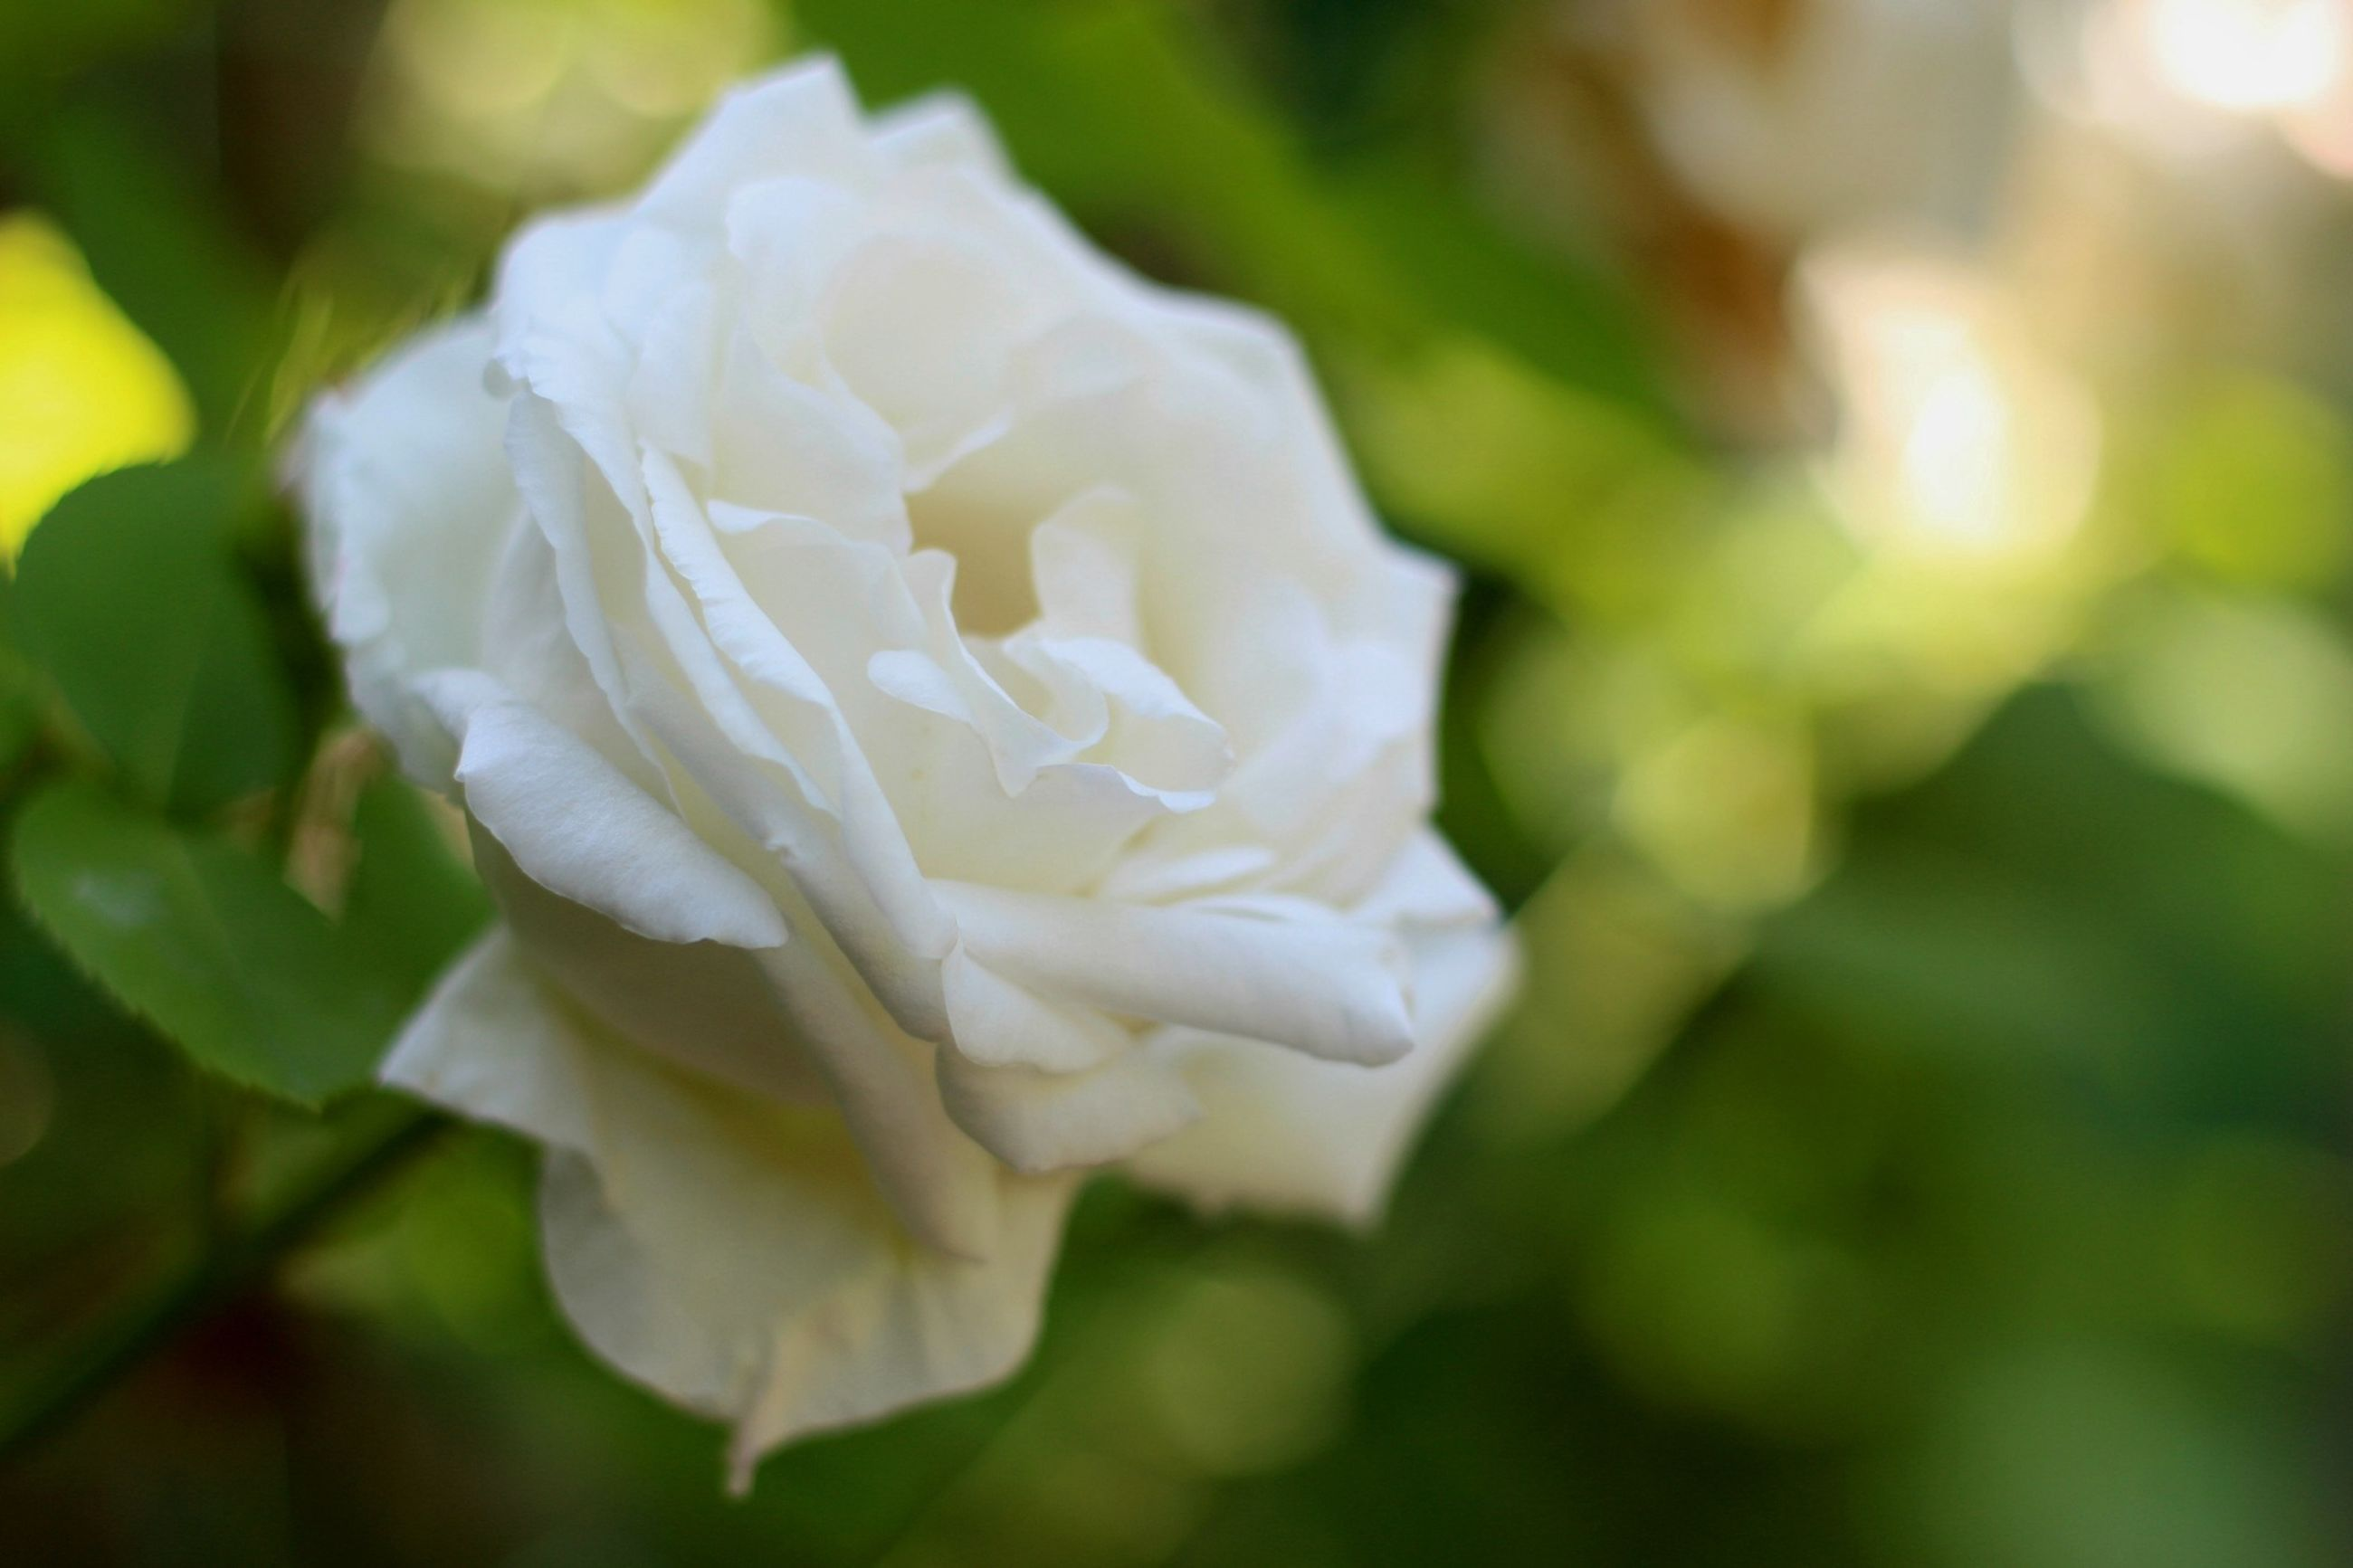 flower, petal, fragility, freshness, flower head, growth, close-up, beauty in nature, focus on foreground, white color, single flower, blooming, nature, rose - flower, in bloom, plant, selective focus, blossom, park - man made space, outdoors